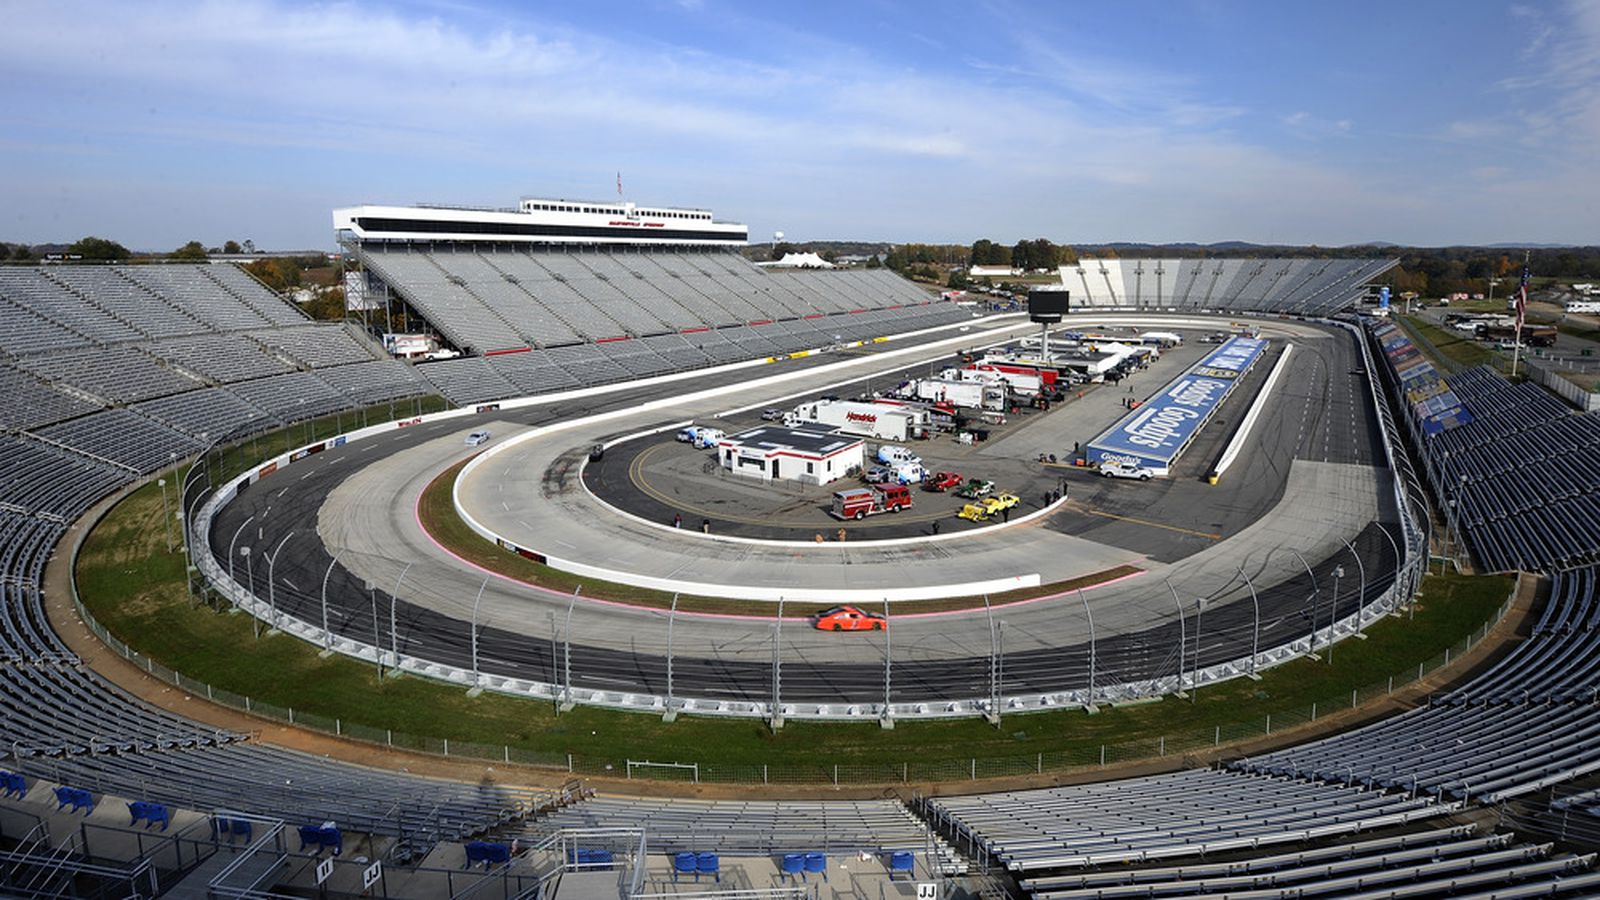 Relive the tight turns of Martinsville Speedway as NASCARcom gives you the Race Rewind from the STP 500